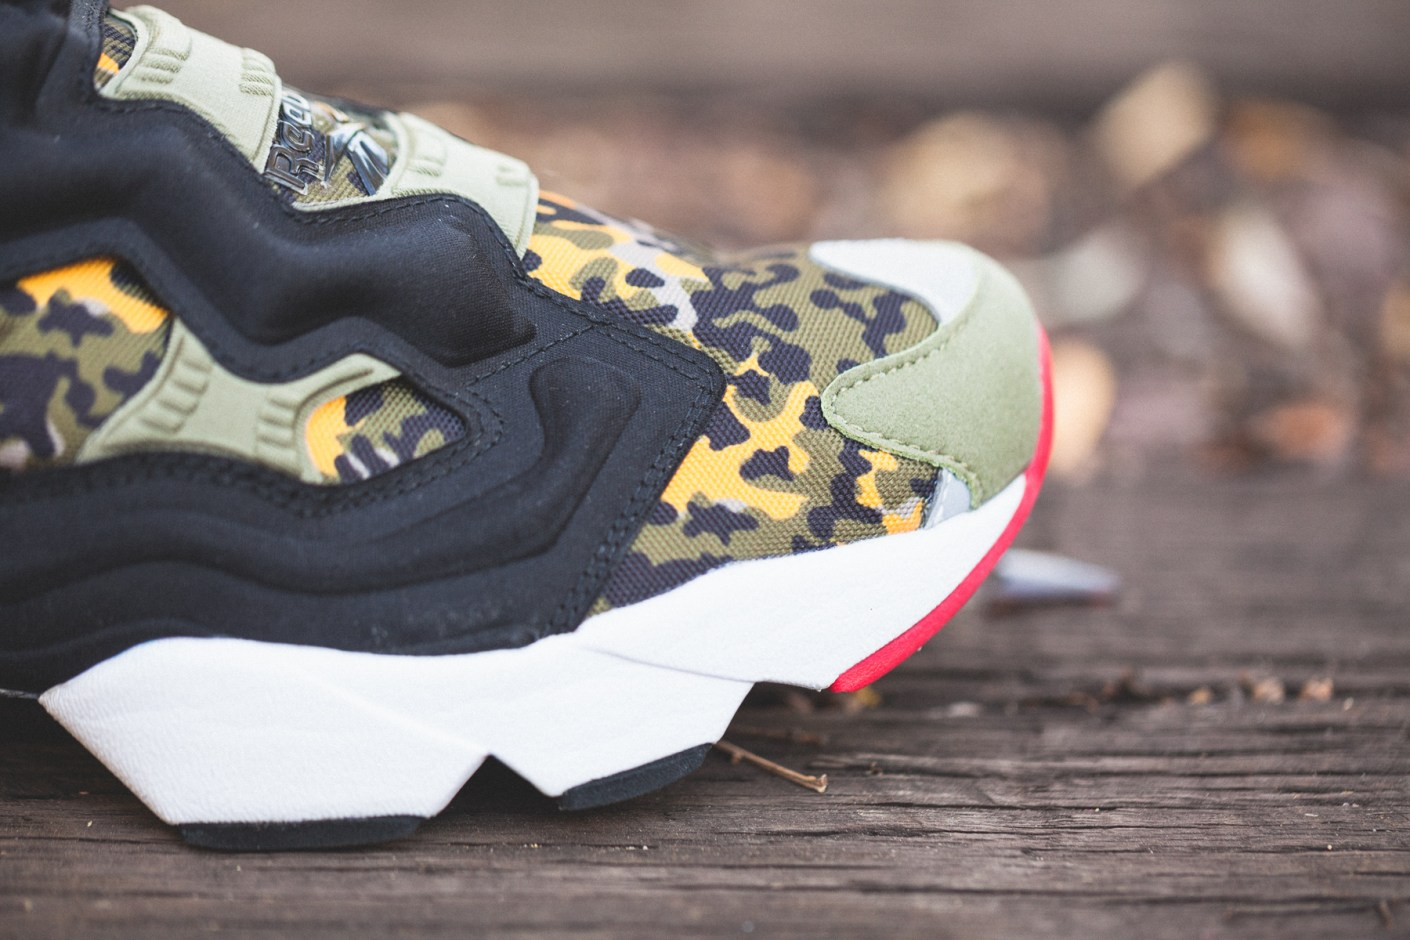 Image of Solebox x Reebok Instapump Fury 20th Anniversary